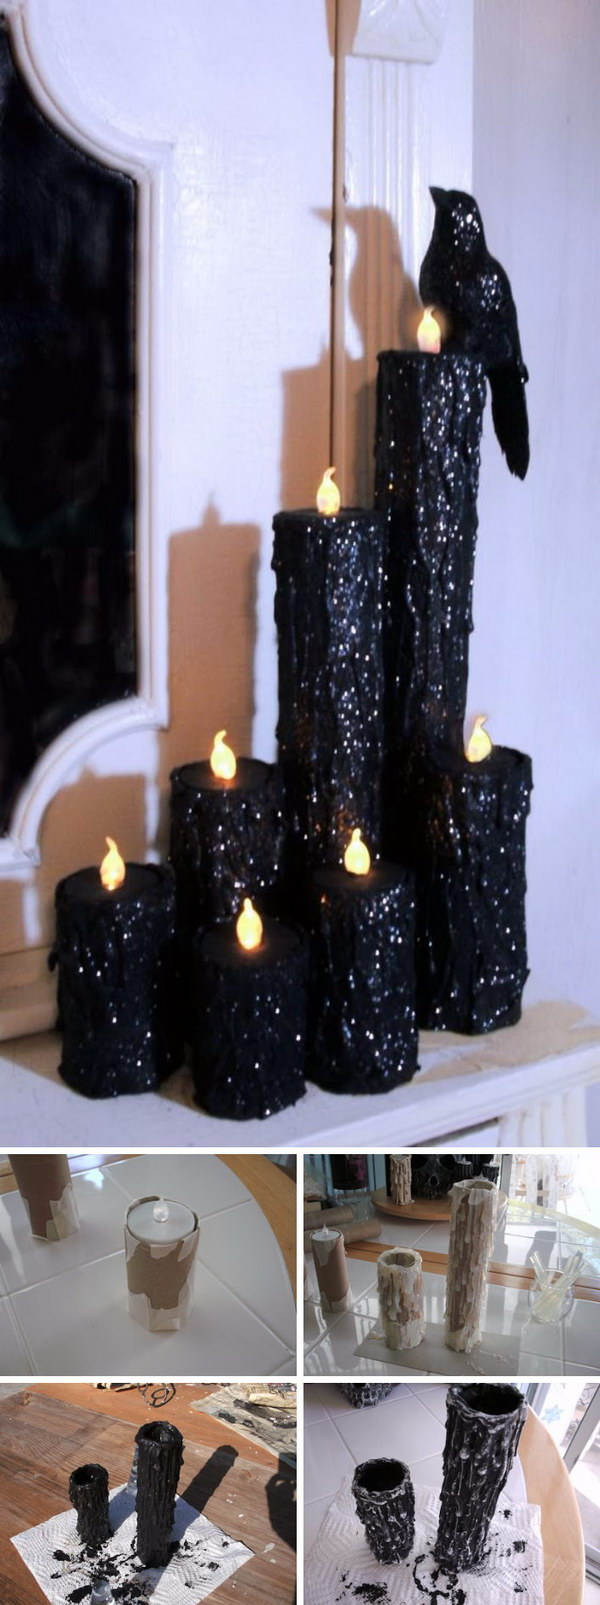 DIY Halloween Creepy Candles.